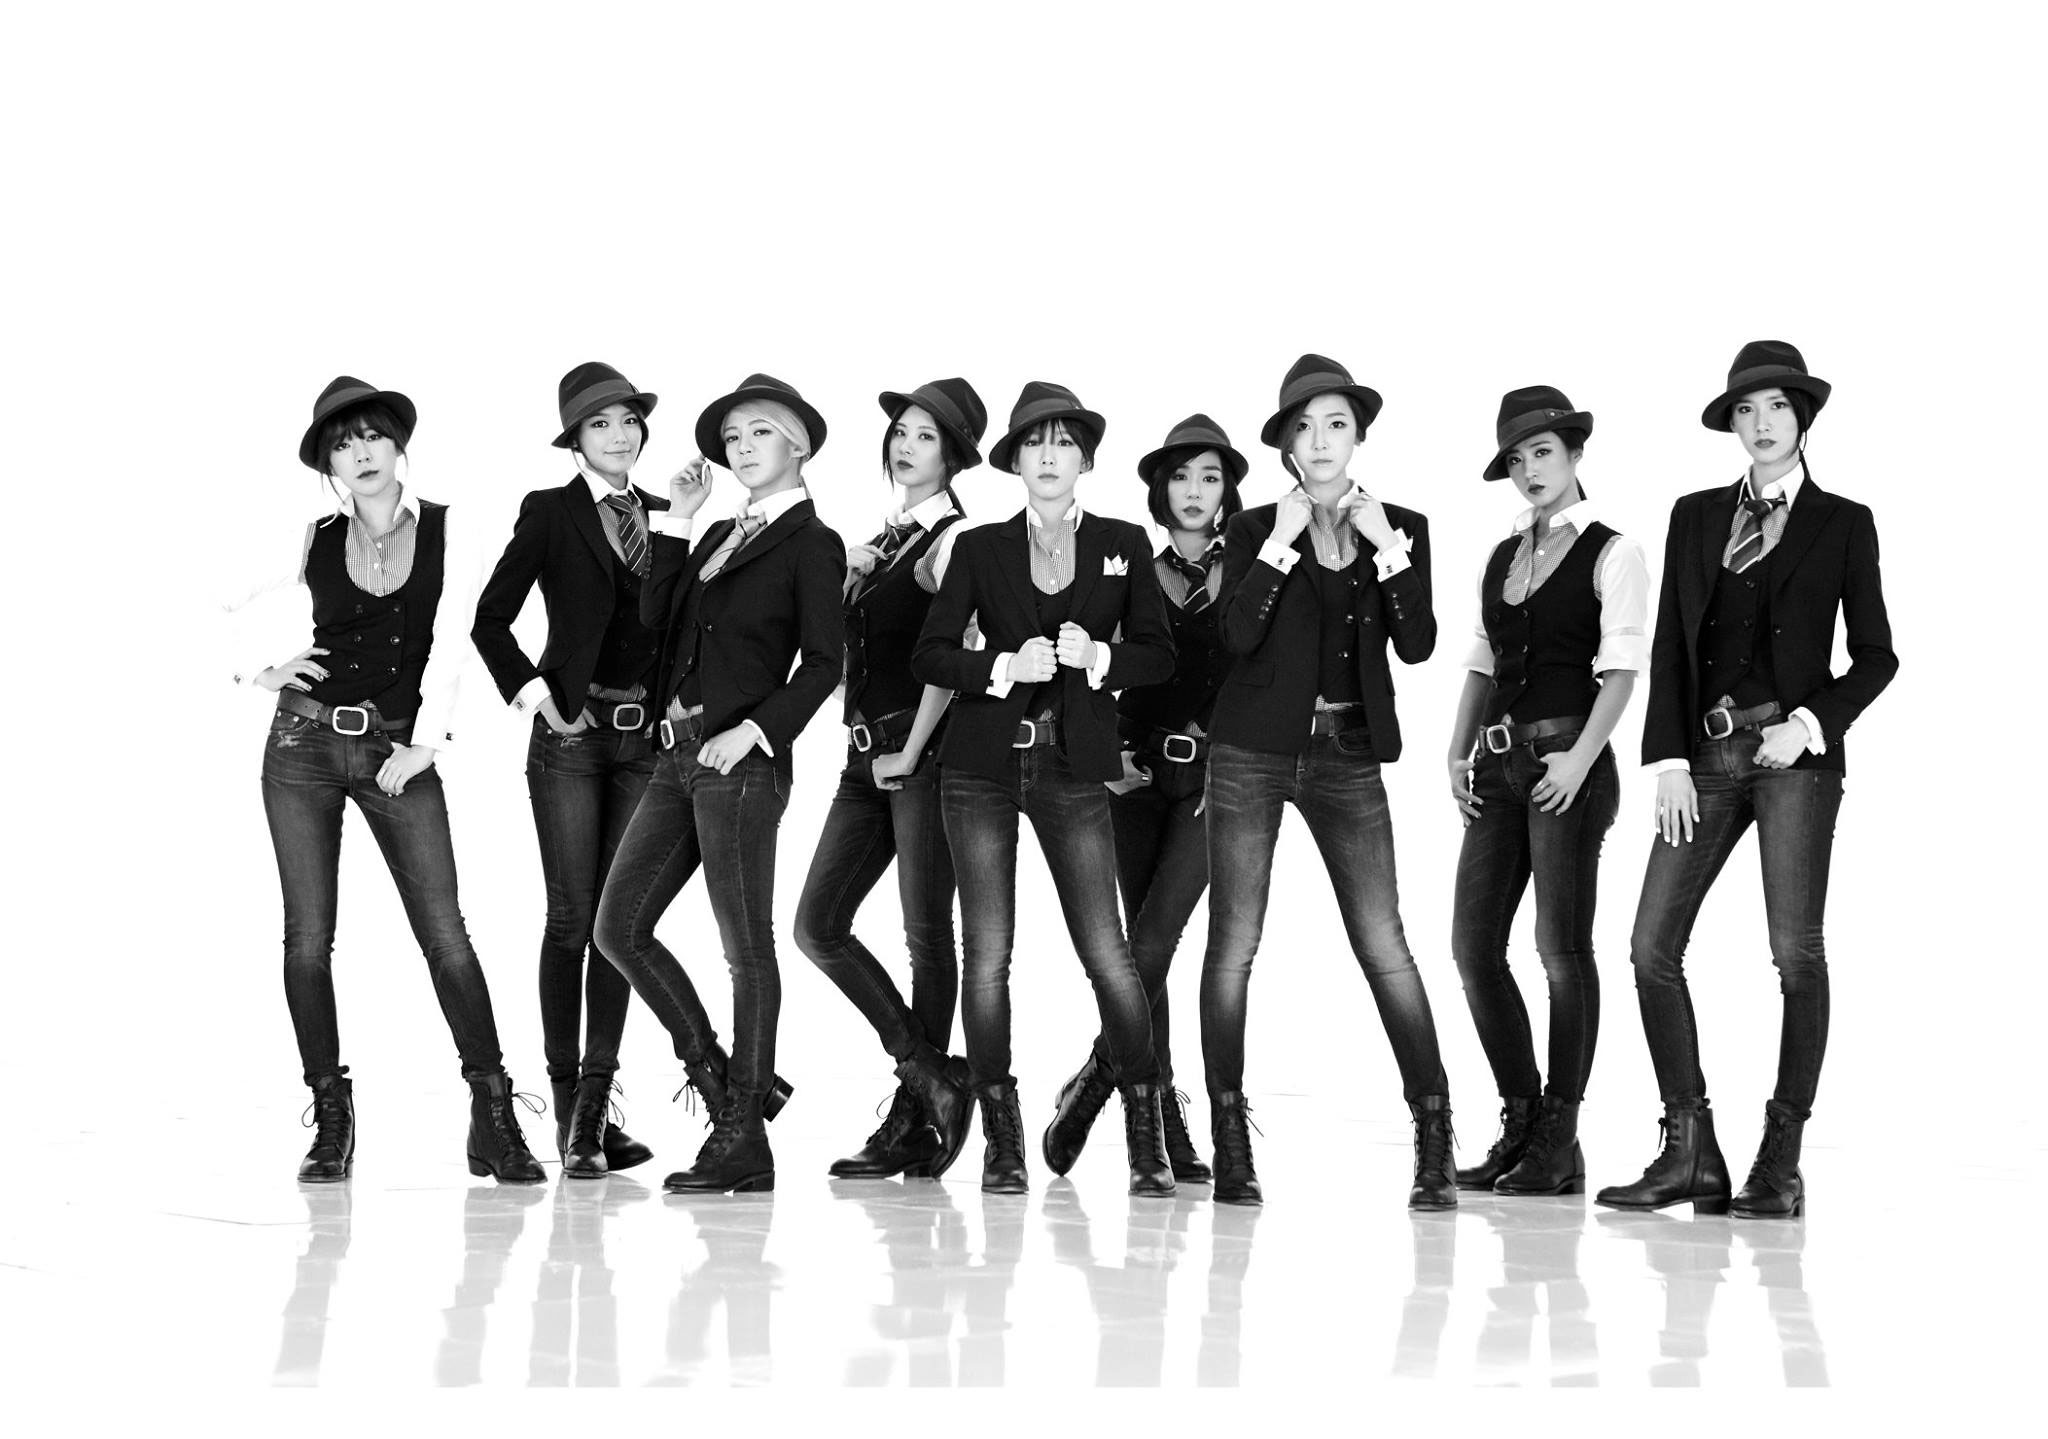 SNSD Mr Mr black white suits concept